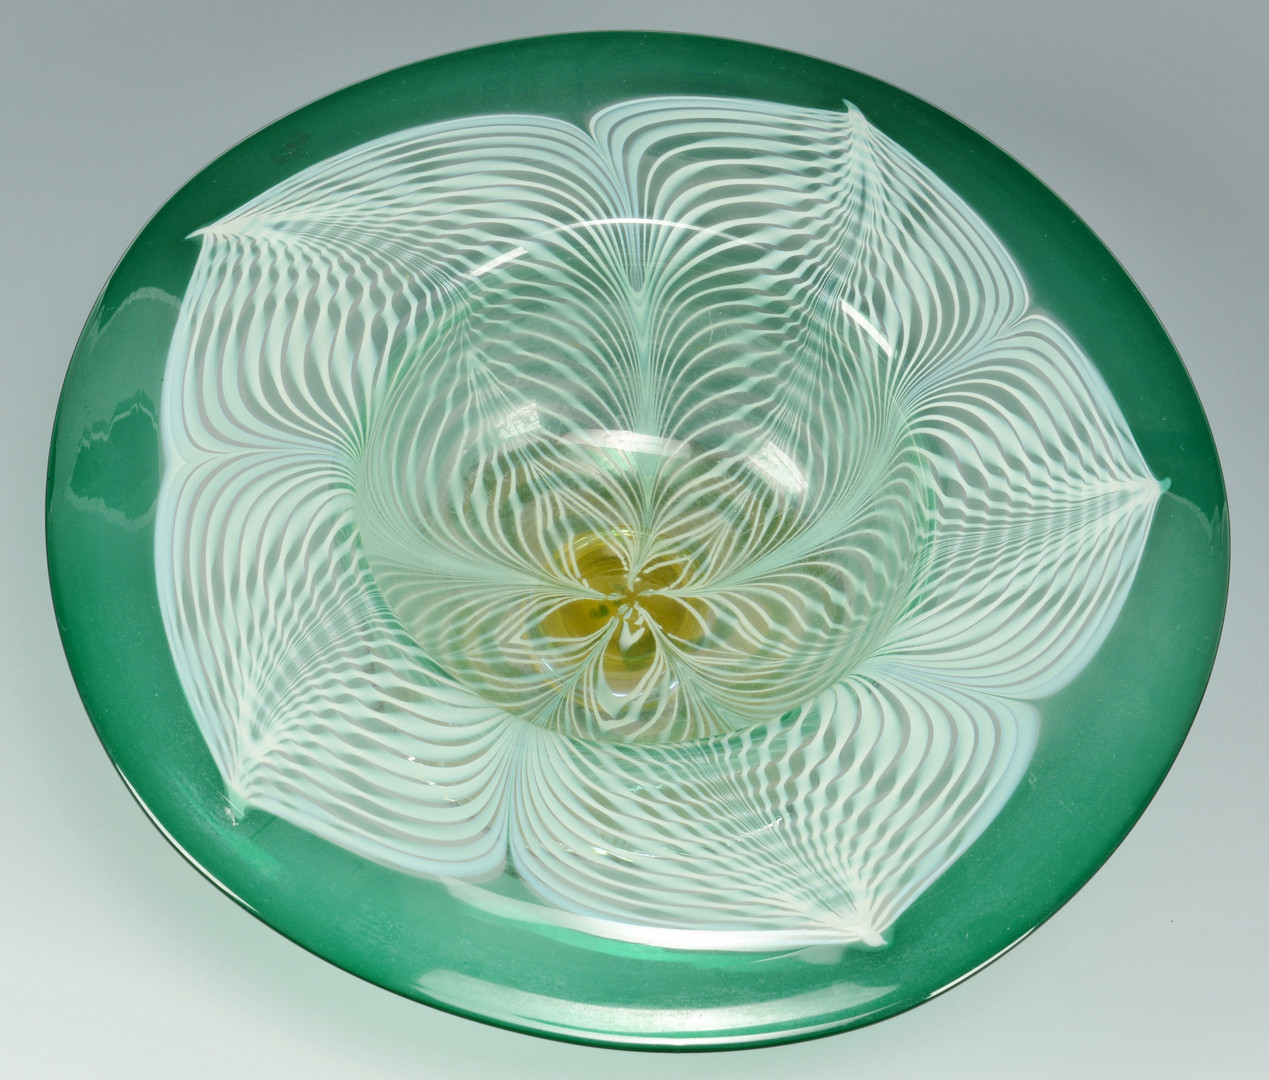 Lot 124: Large Durand Peacock Feather Compote